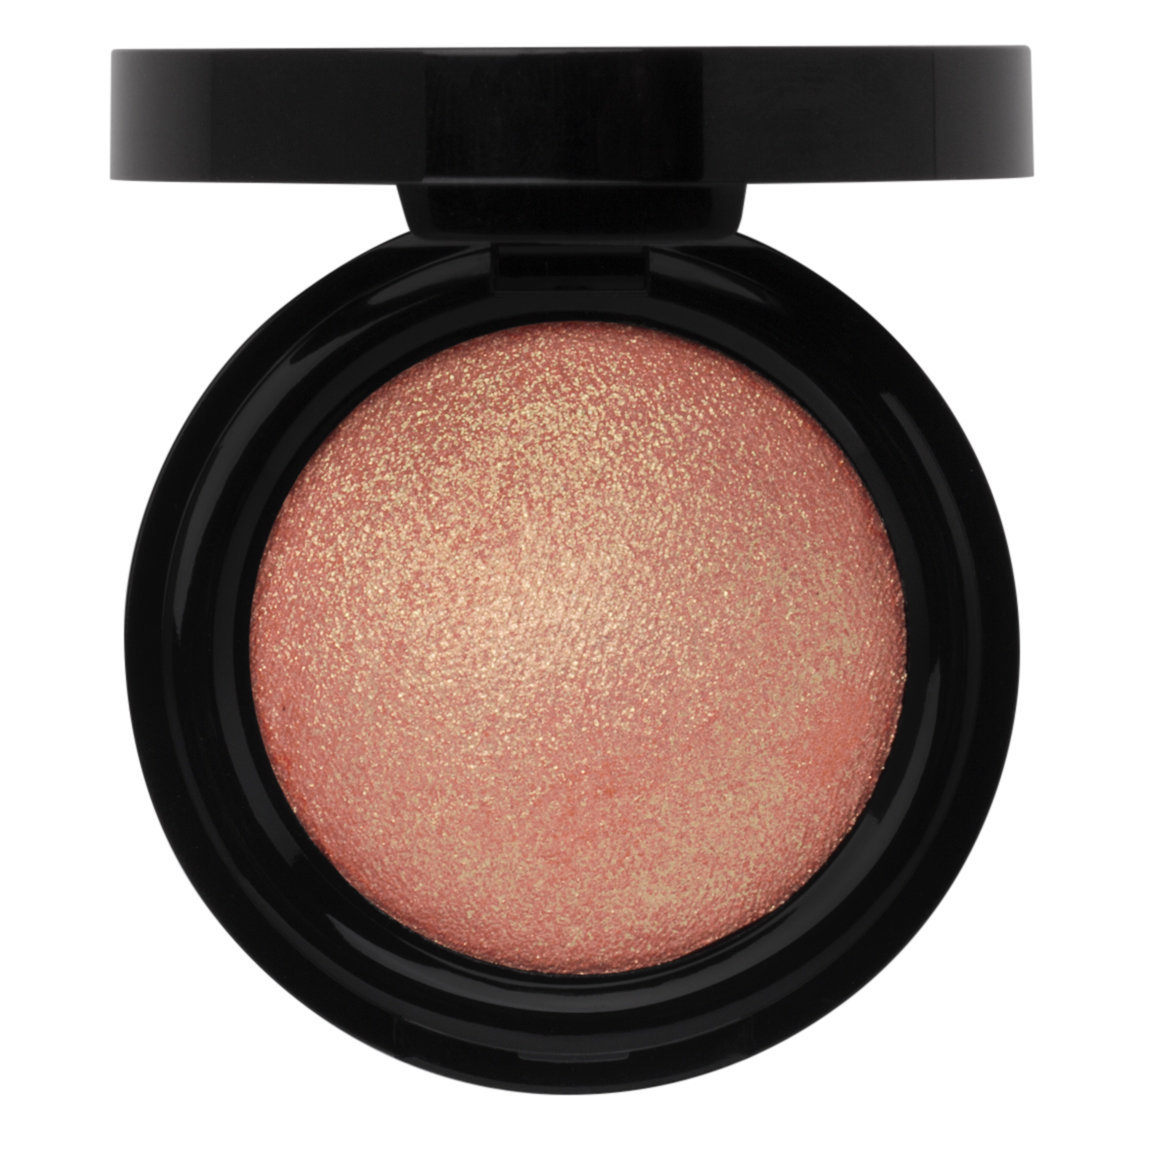 Inglot Cosmetics Intense Sparkler Face Eyes Body Highlighter 14 product swatch.